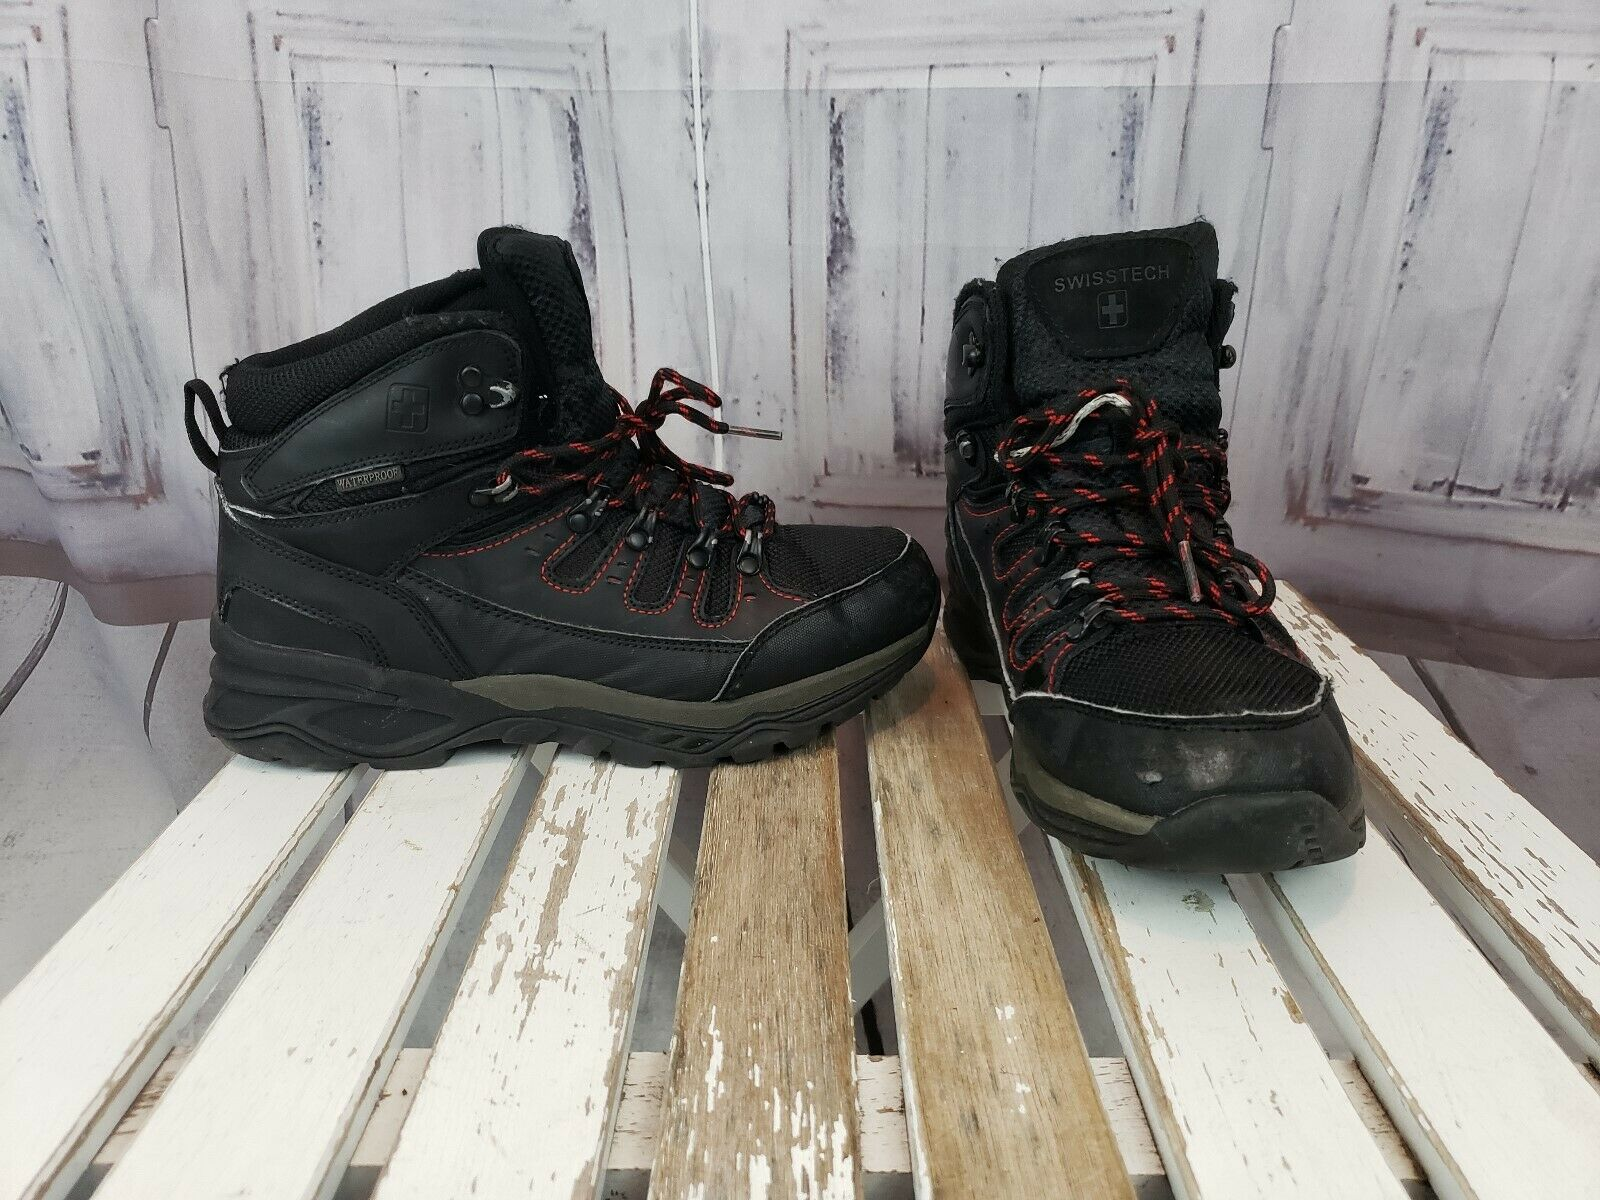 Mens Swiss Tech Waterproof Black Winter Snow Casual Daily shoes Boot Size 7.5